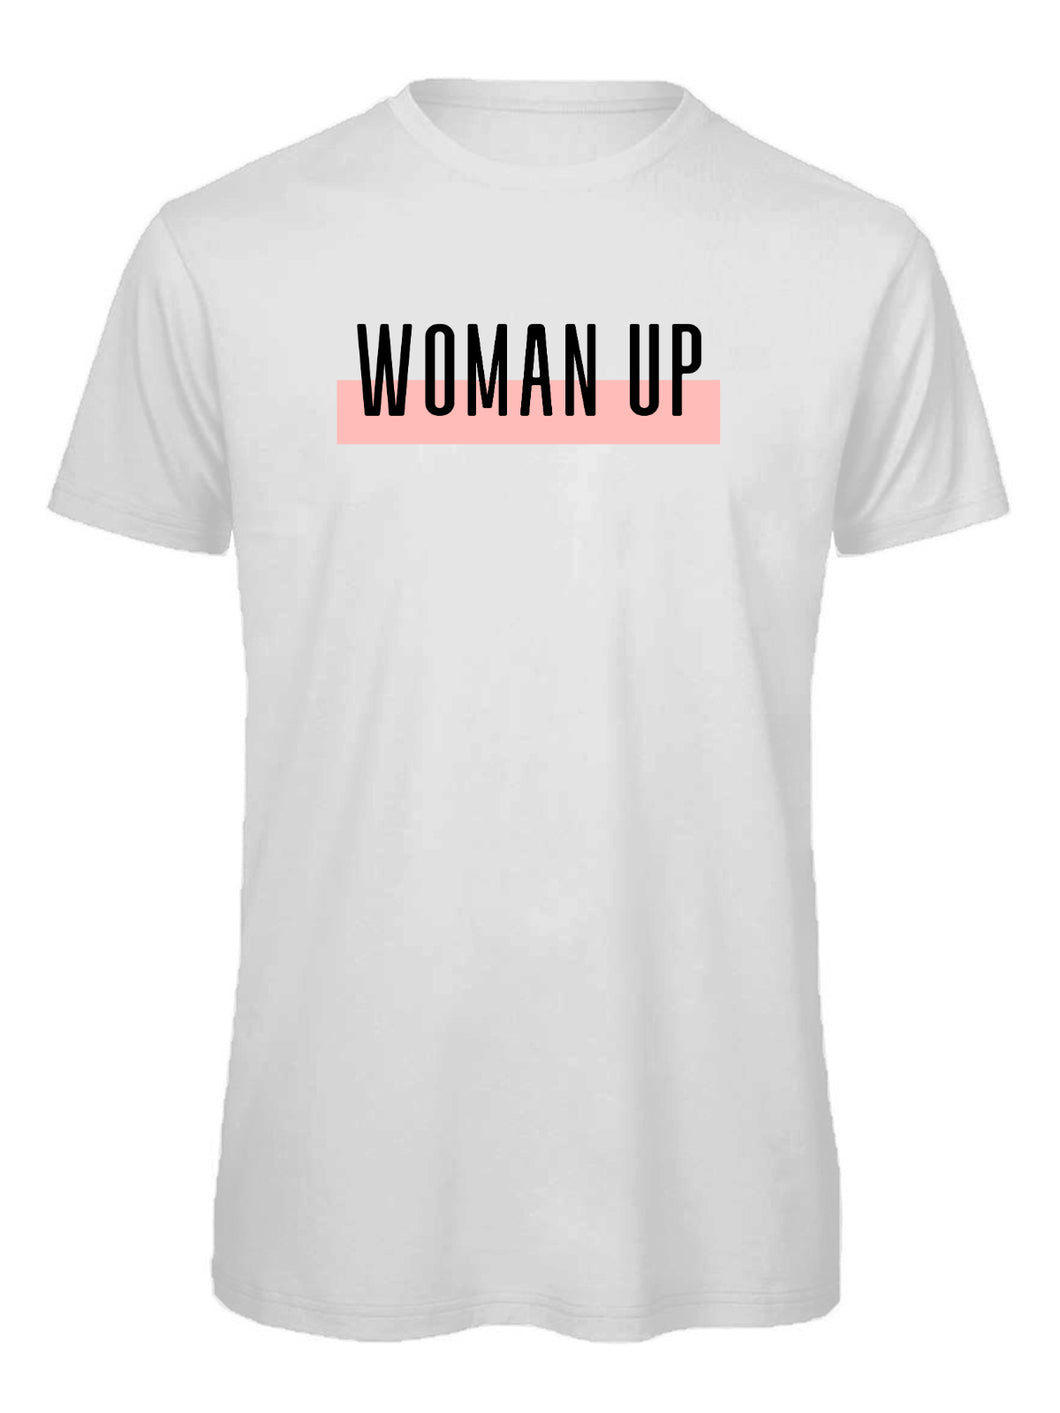 WOMAN UP | T Shirt - Queen B and Co.